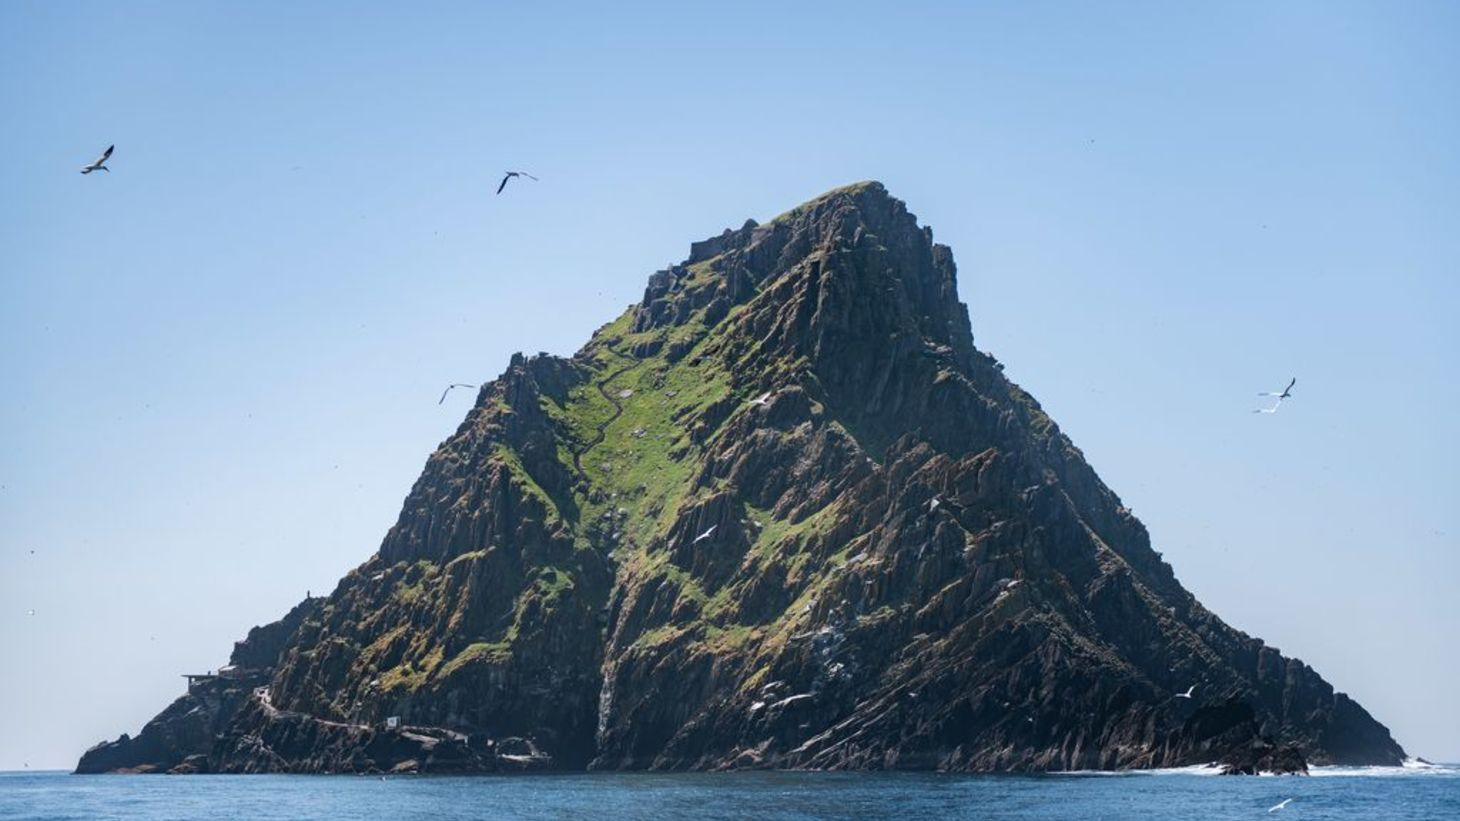 The iconic Skellig Michael in County Kerry.